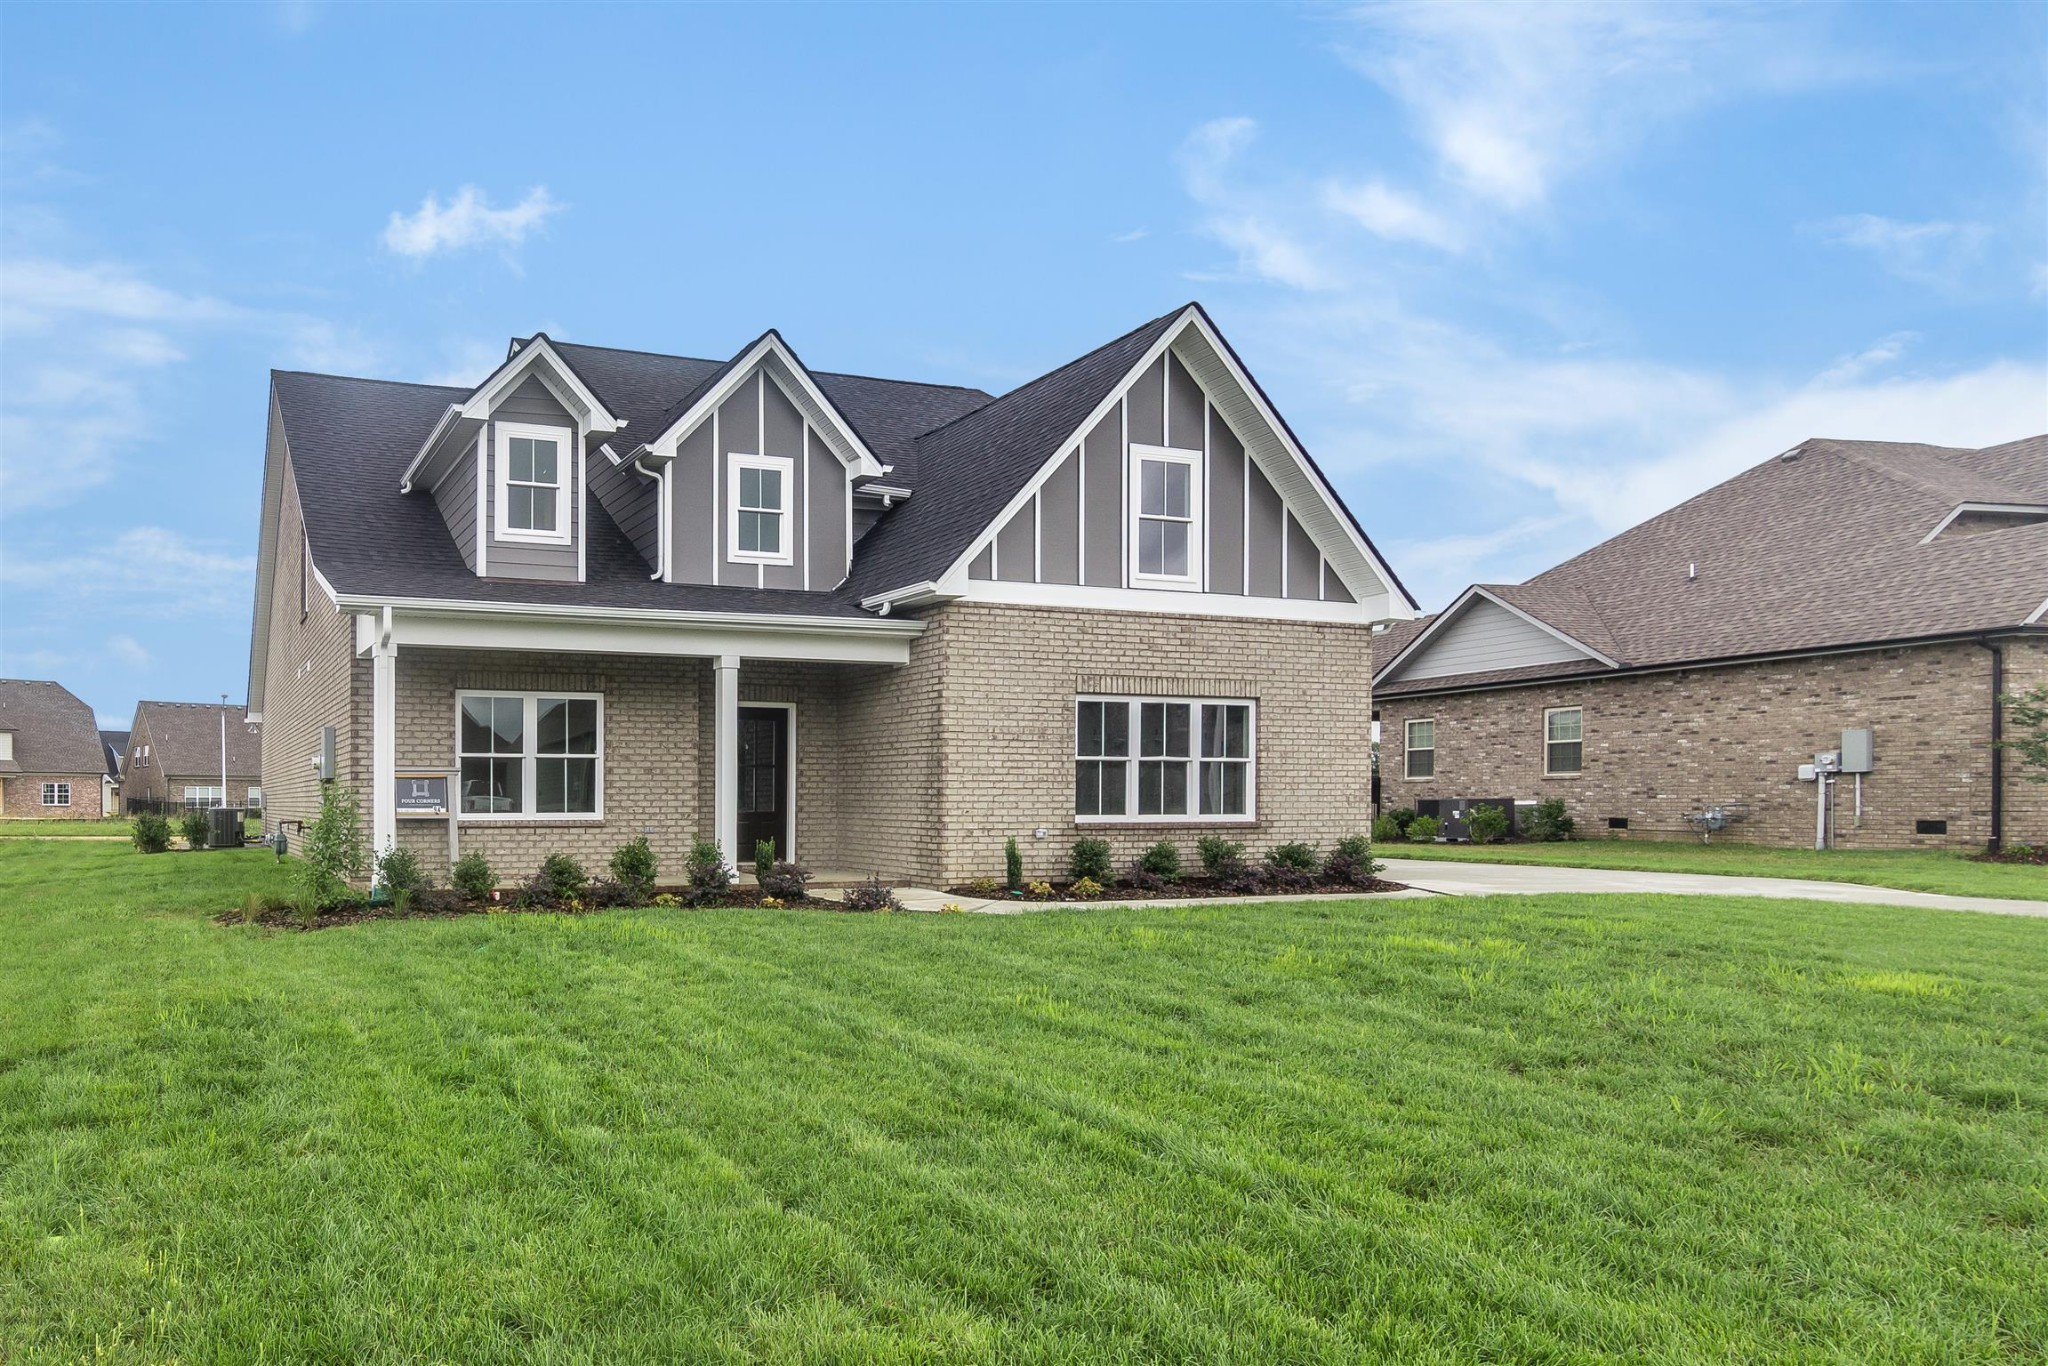 5707 Mendenhall Way Property Photo - Murfreesboro, TN real estate listing